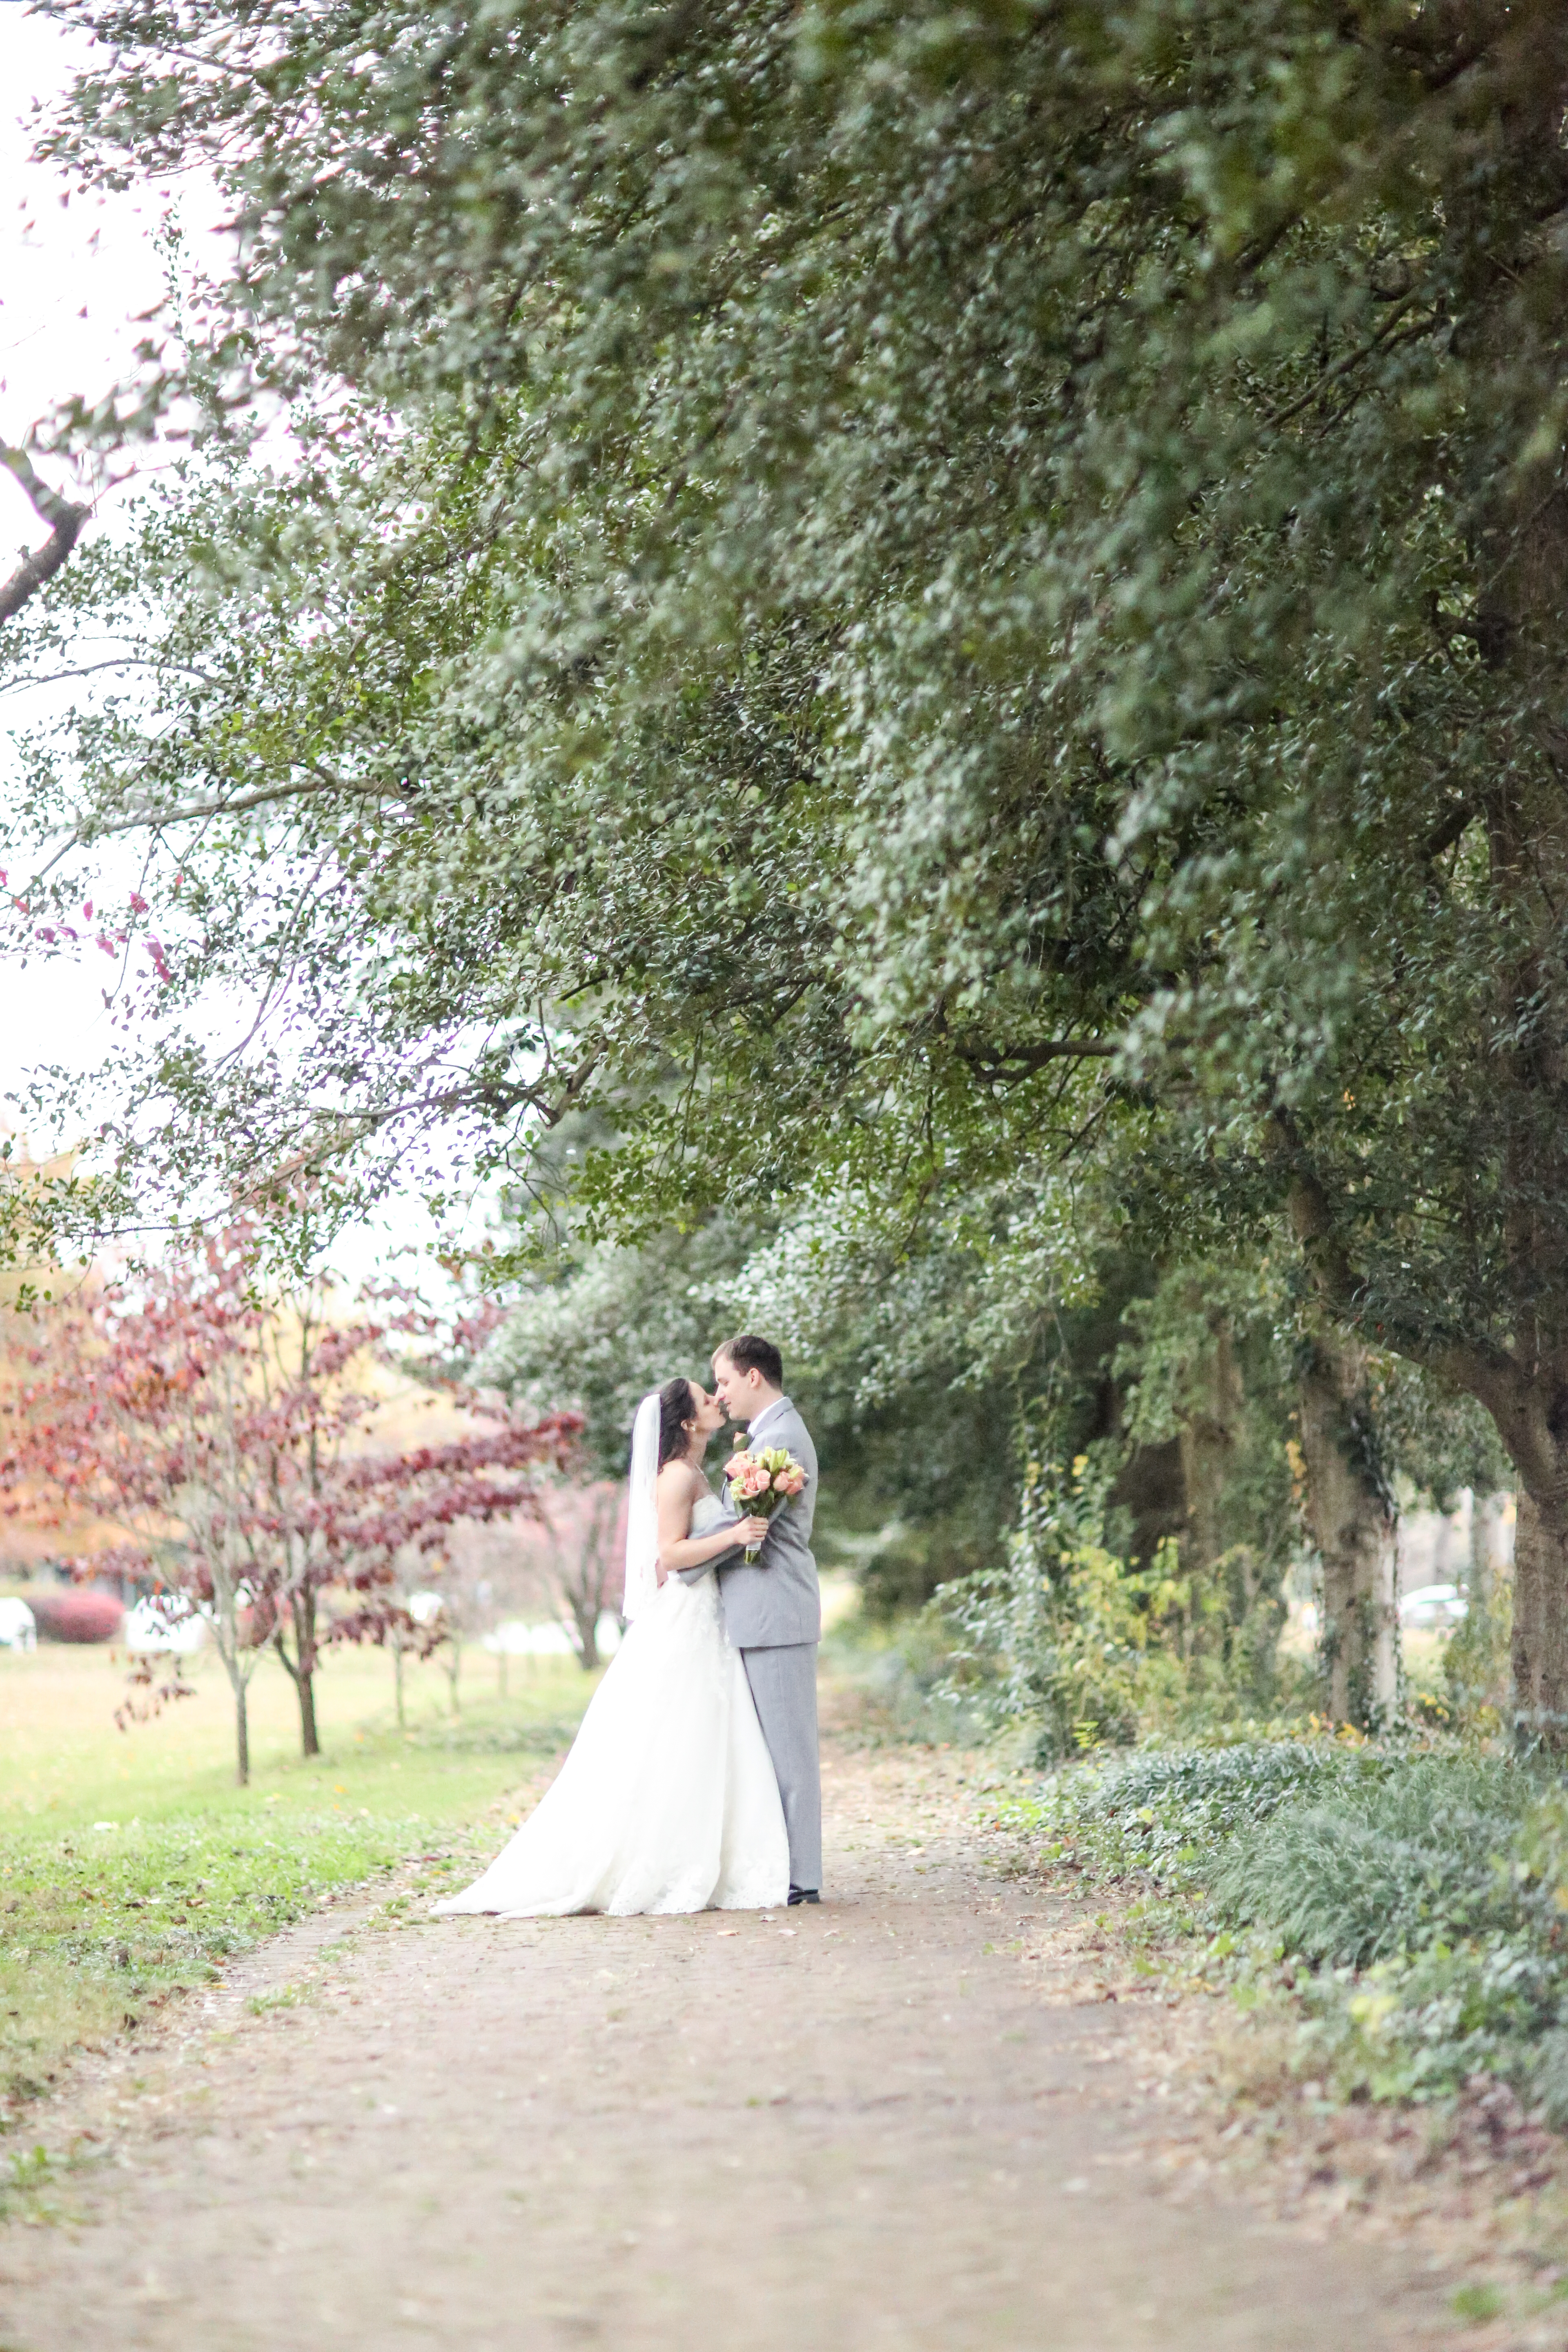 carillon-wedding-richmond-virginia-wedding-heather-michelle-photography-1-of-1-45